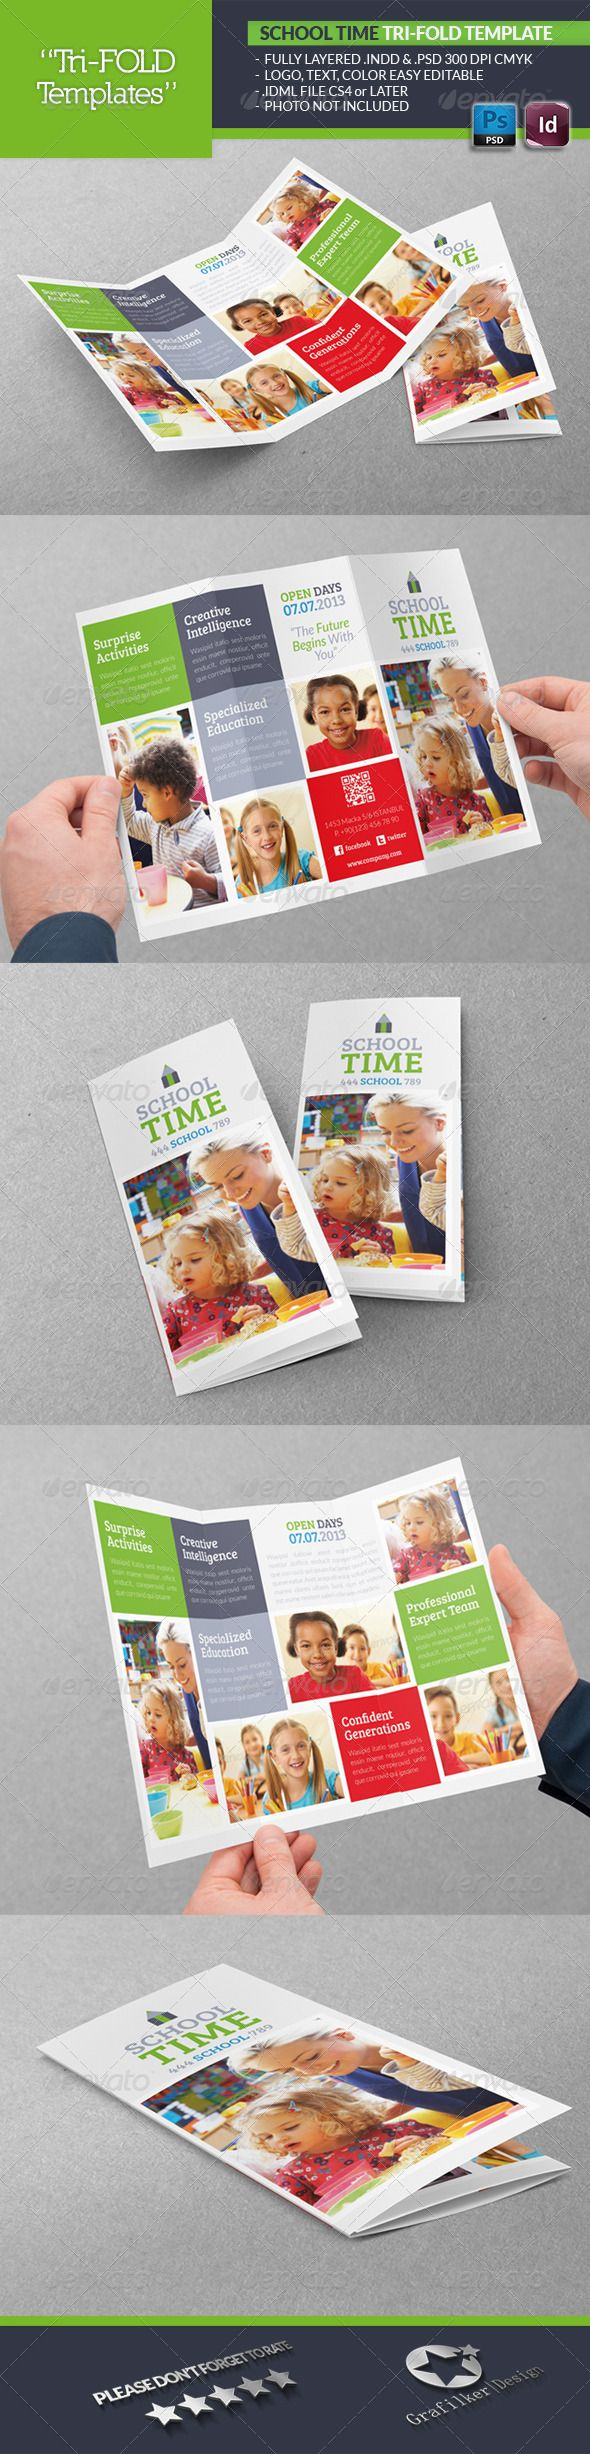 School Time TriFold Template #curriculum #student Download : https://graphicriver.net/item/school-time-trifold-template/4956536?ref=pxcr